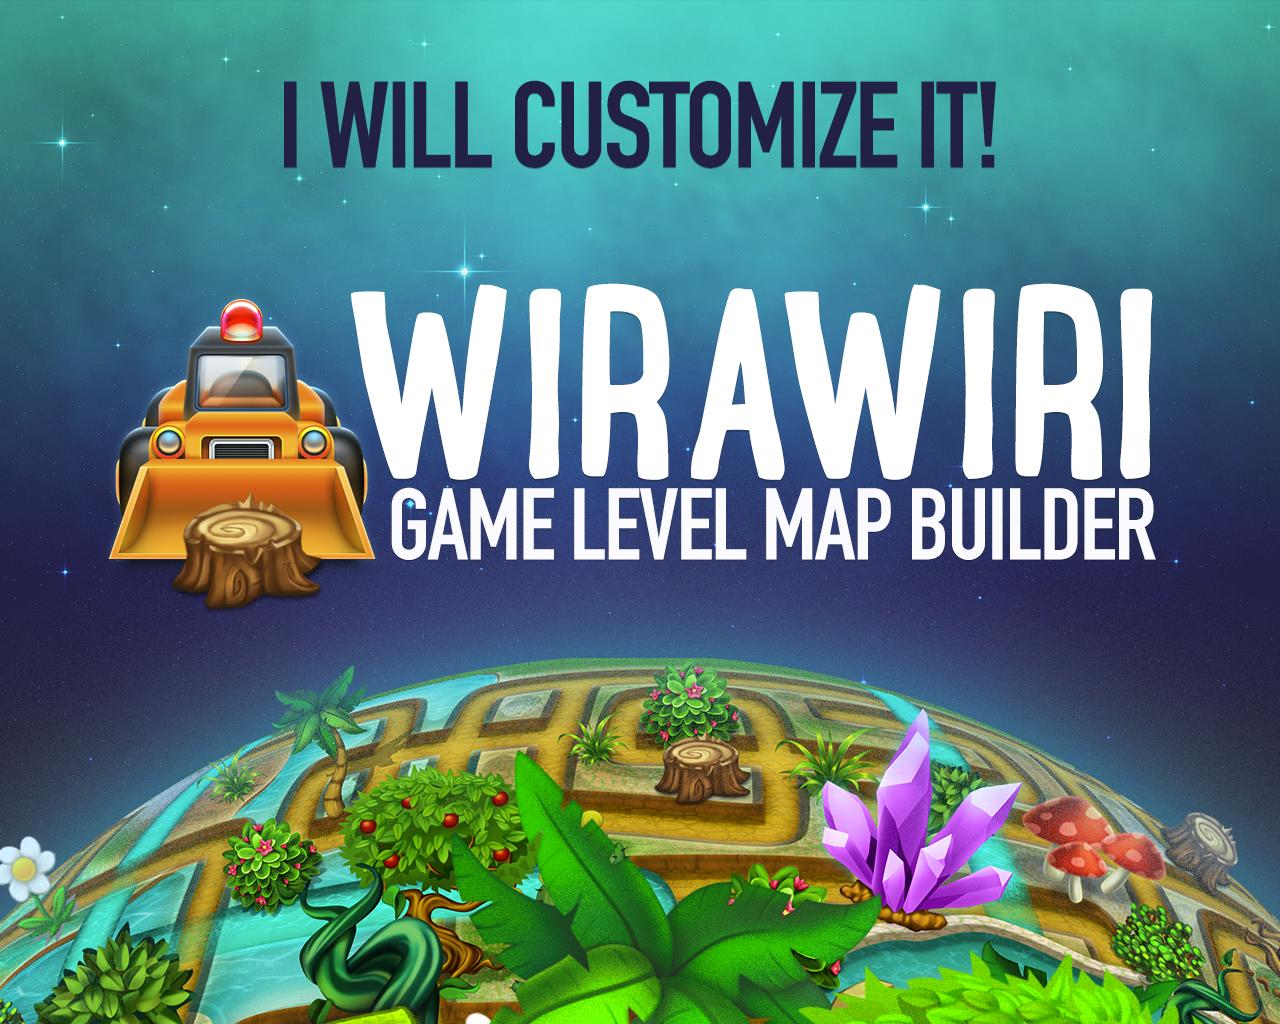 Customize Wirawiri: Tileable Game Level Map by weirdeetz - 109287